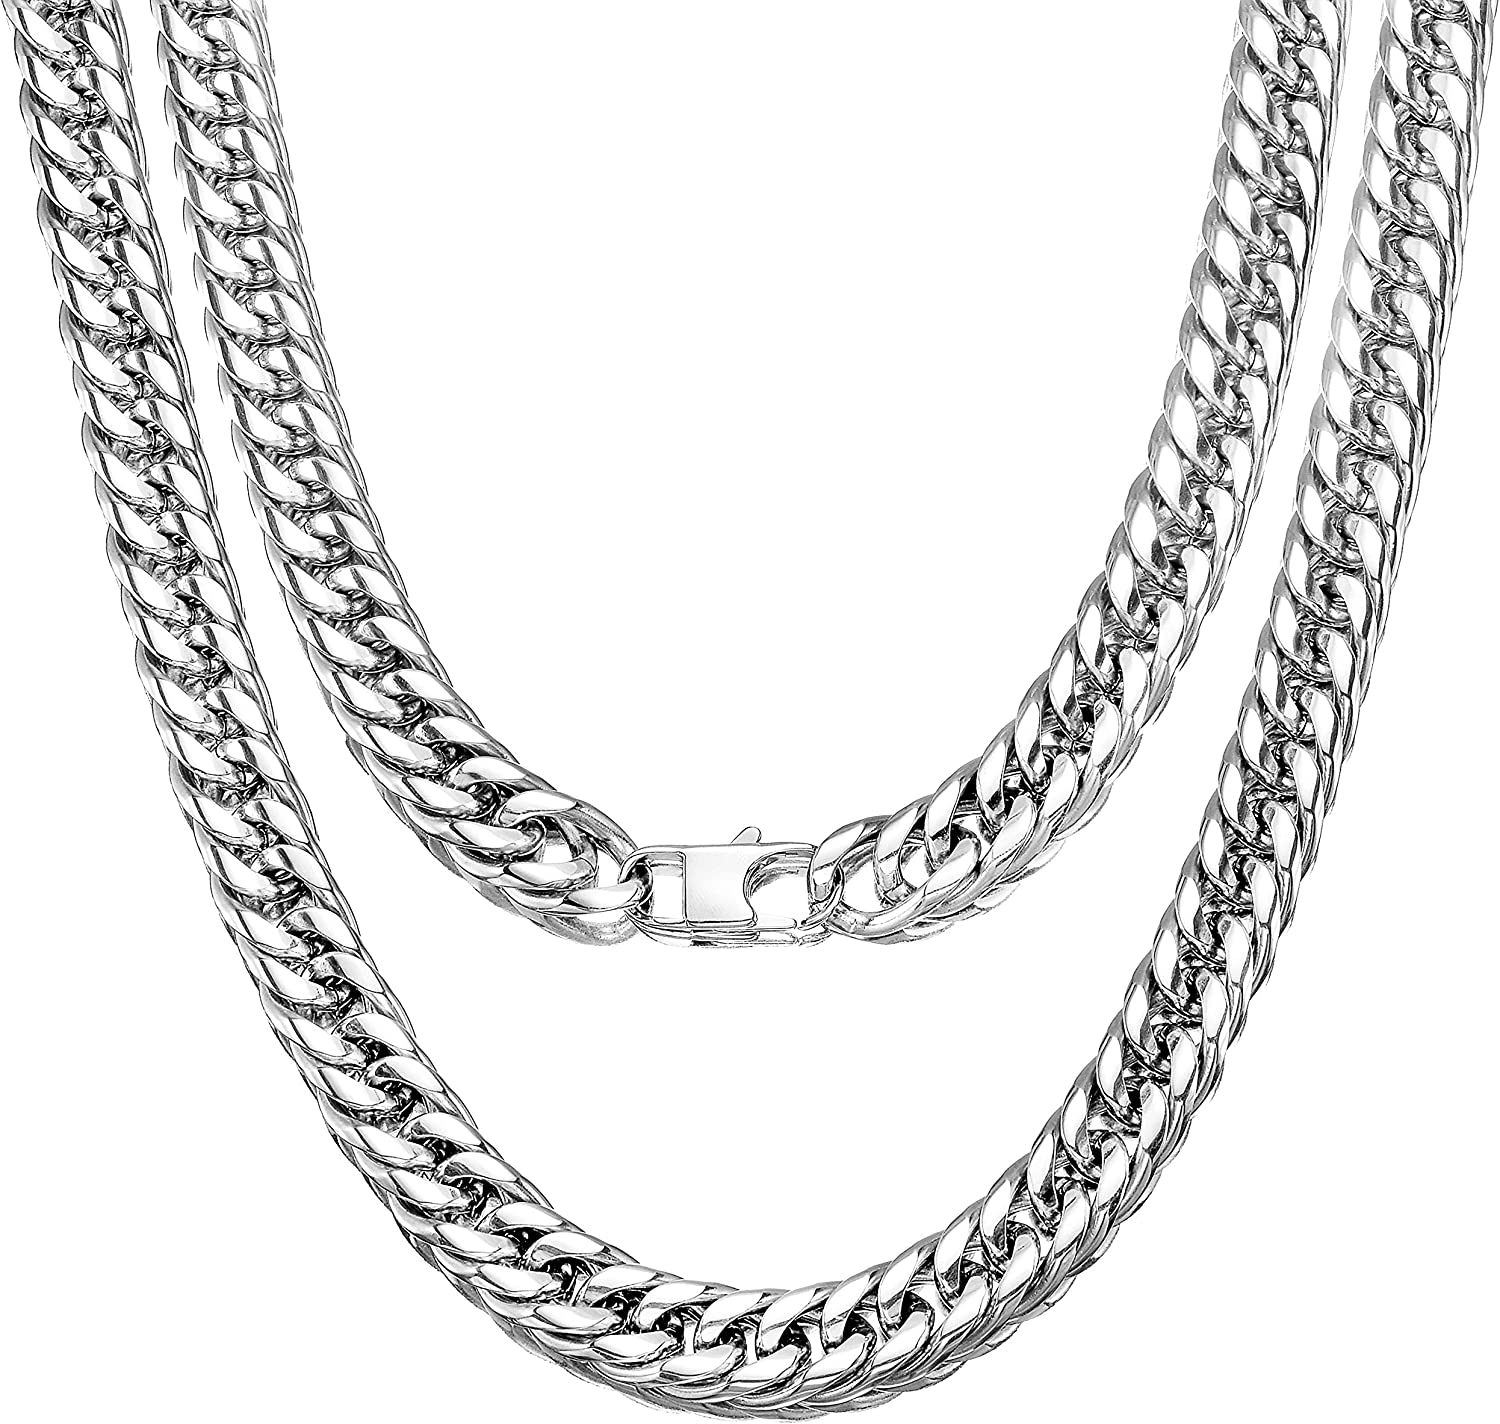 Amazon Com Jewelry Kingdom 1 Cuban Link Chain Necklace For Men And Women 13mm High Polish Stainless Steel Double Curb Chain Franco Cuban Link 13mm 20 Clothing